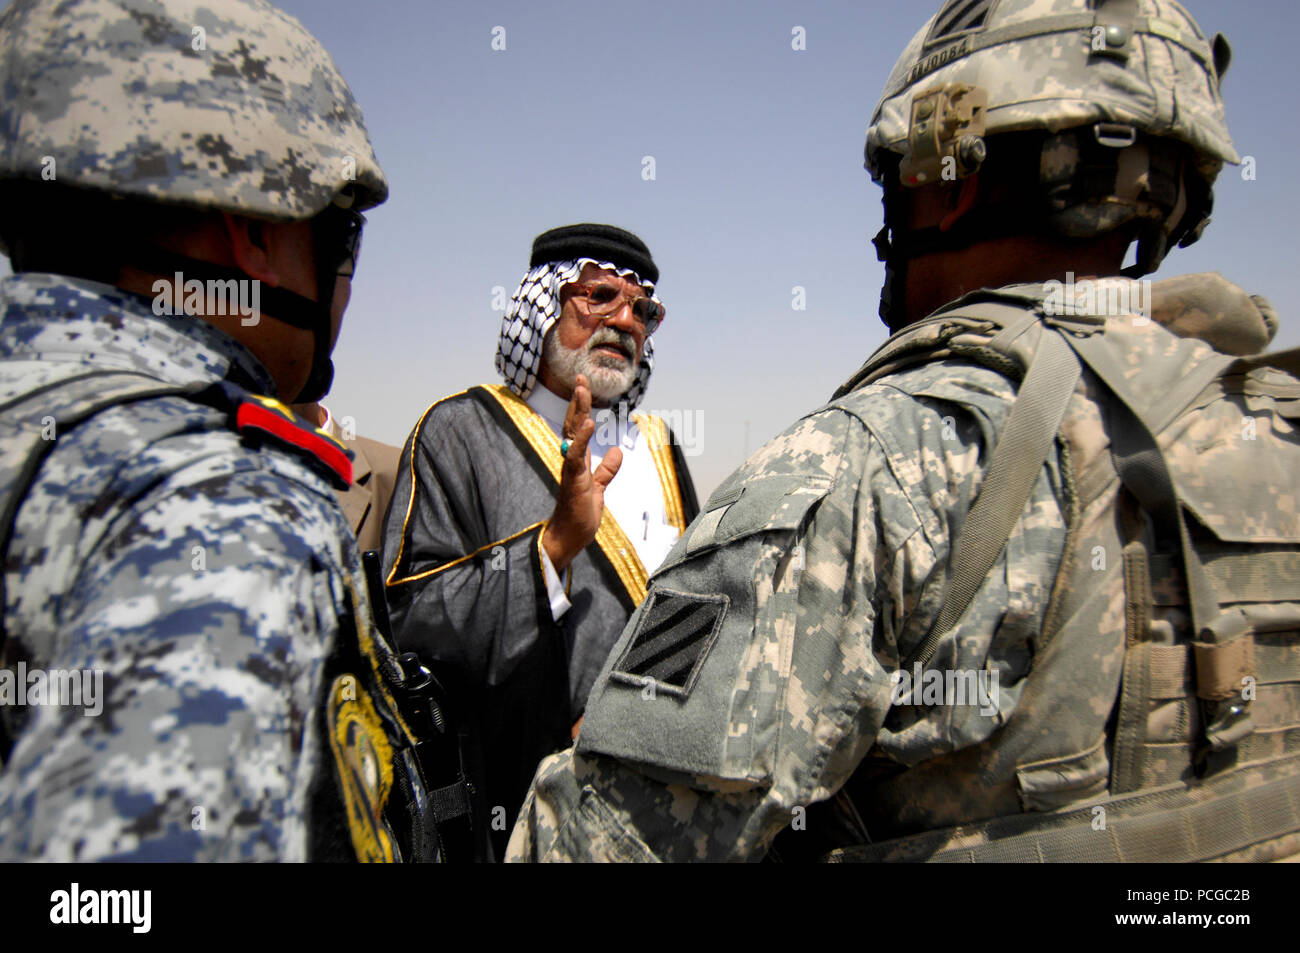 Abu Sabah, center, a respected elder, speaks to U.S. Army Lt. Col. Johnnie Johnson, right, assigned to the Personal Security Detachment, 4th Battalion, 64th Armor Regiment, 3rd Infantry Division, and an Iraqi soldier, left, at the opening of a swimming pool in Risalah, Baghdad, Iraq, Sept. 18, 2008. - Stock Image